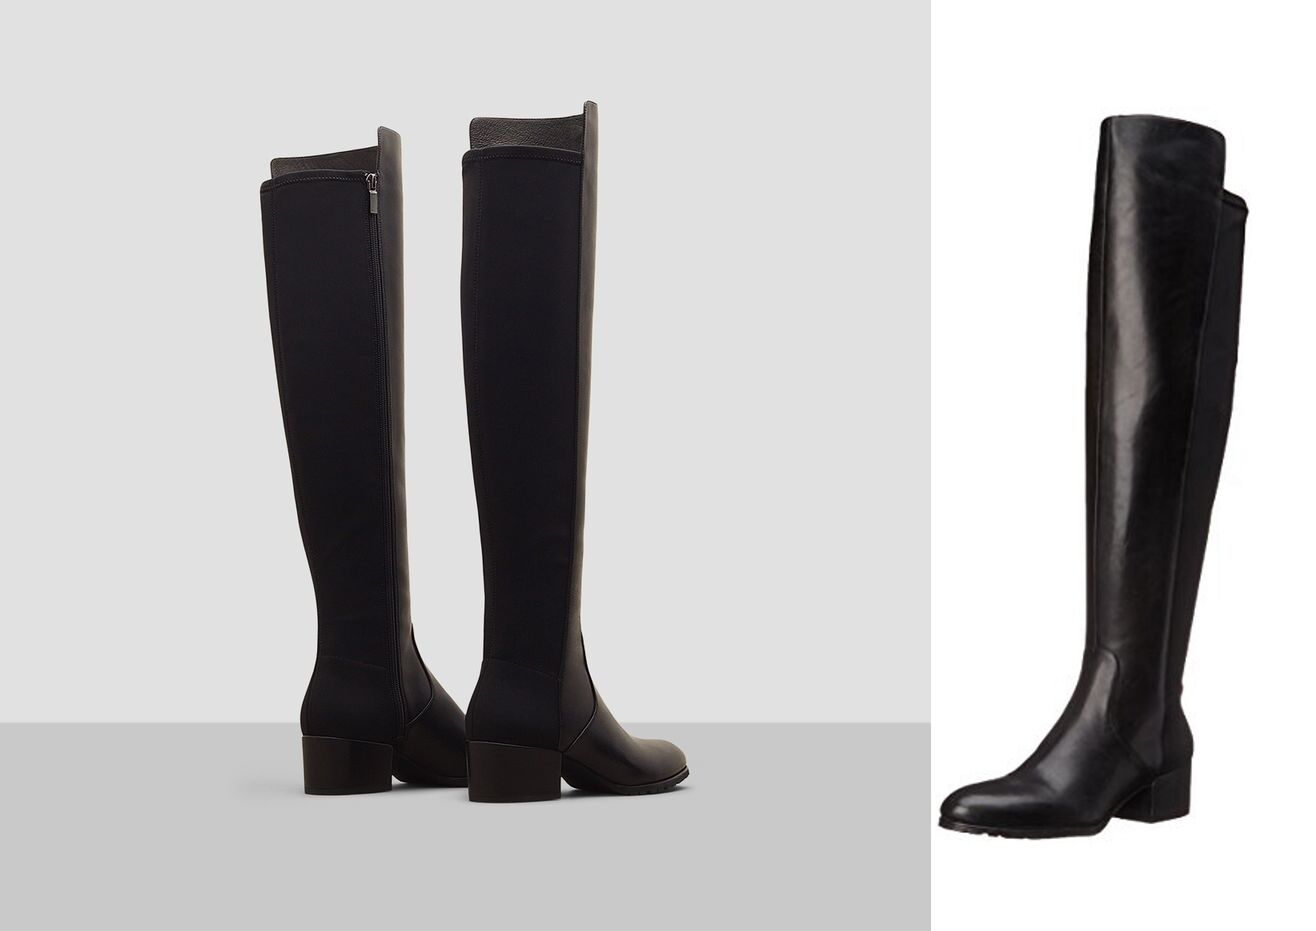 Kenneth Cole Women's Boots Felix Riding Black Leather Knee High Boots